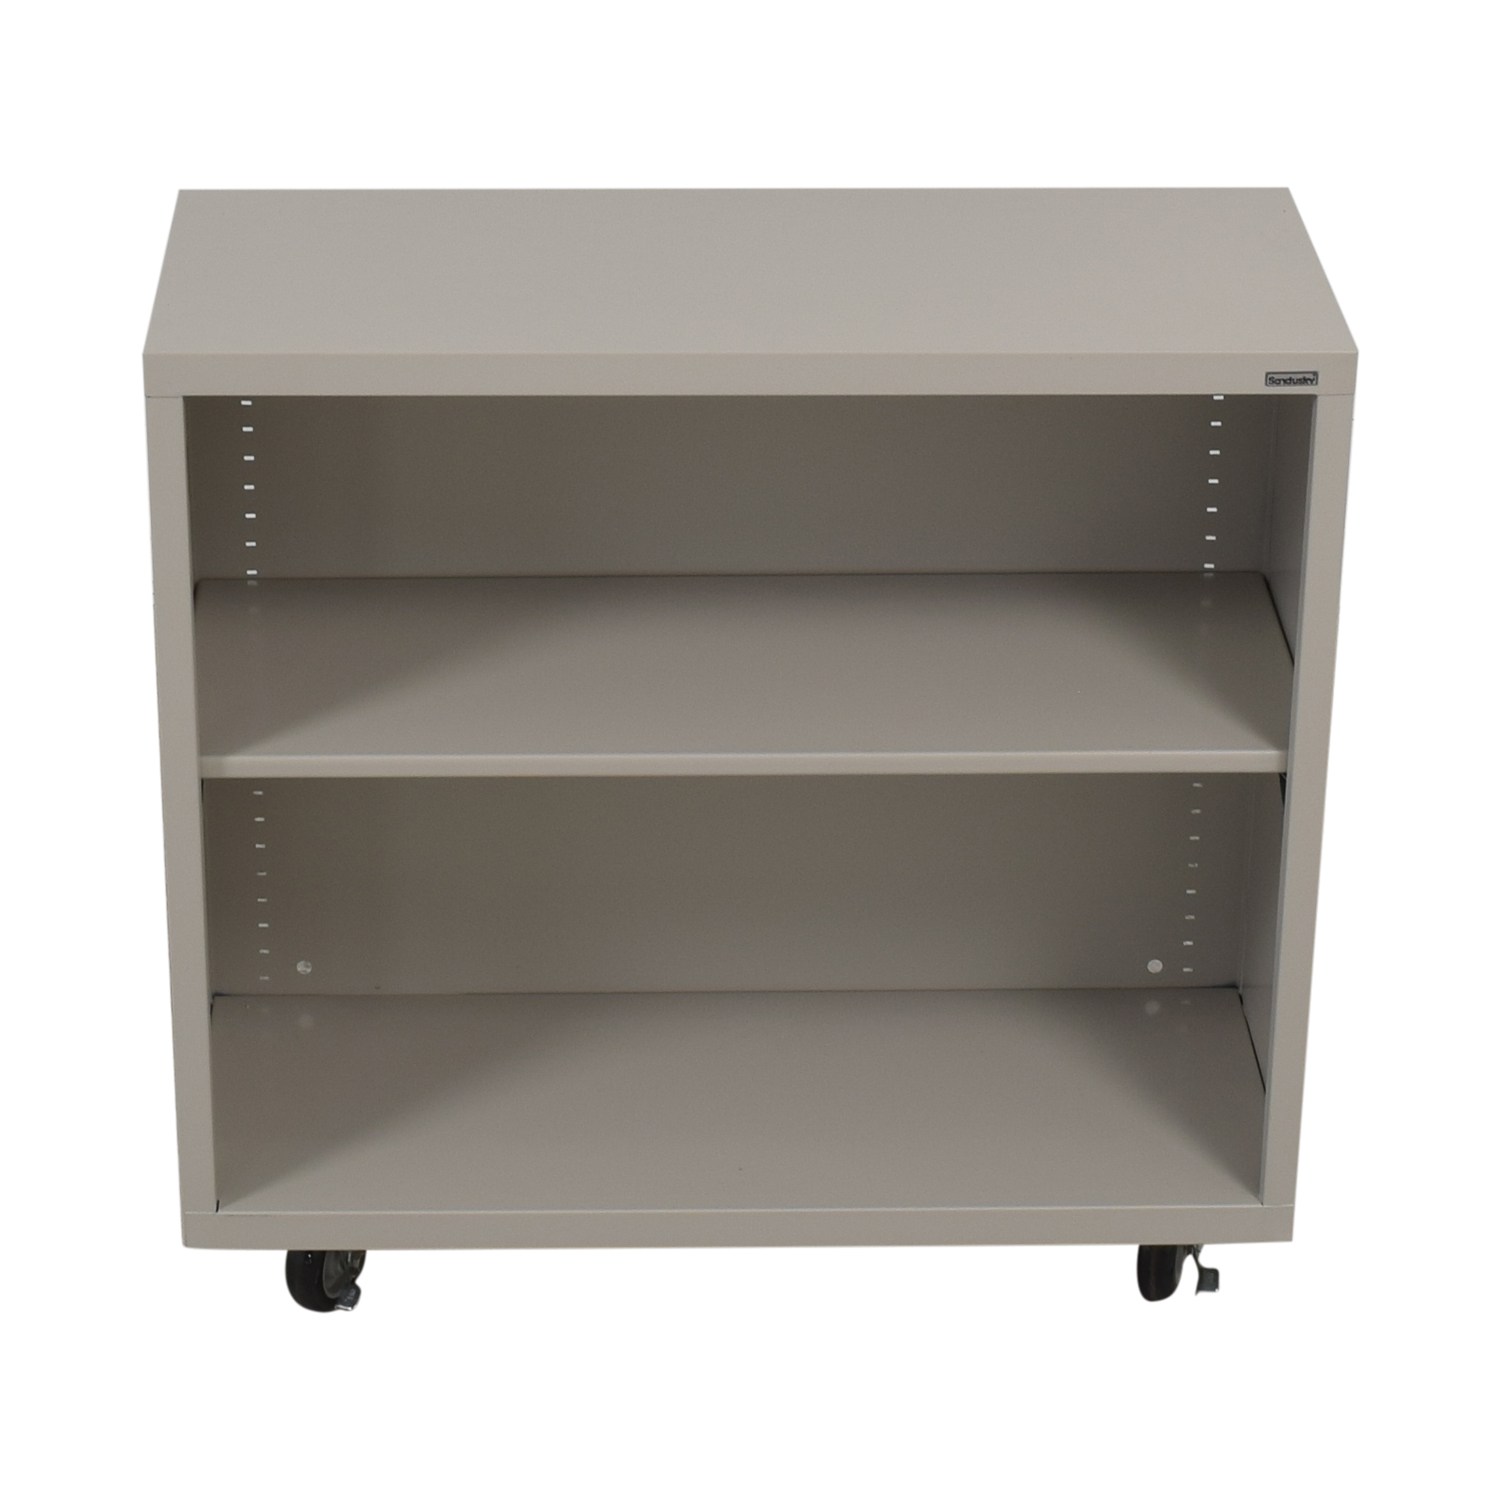 Sandusky Metal Shelves on Casters / Storage